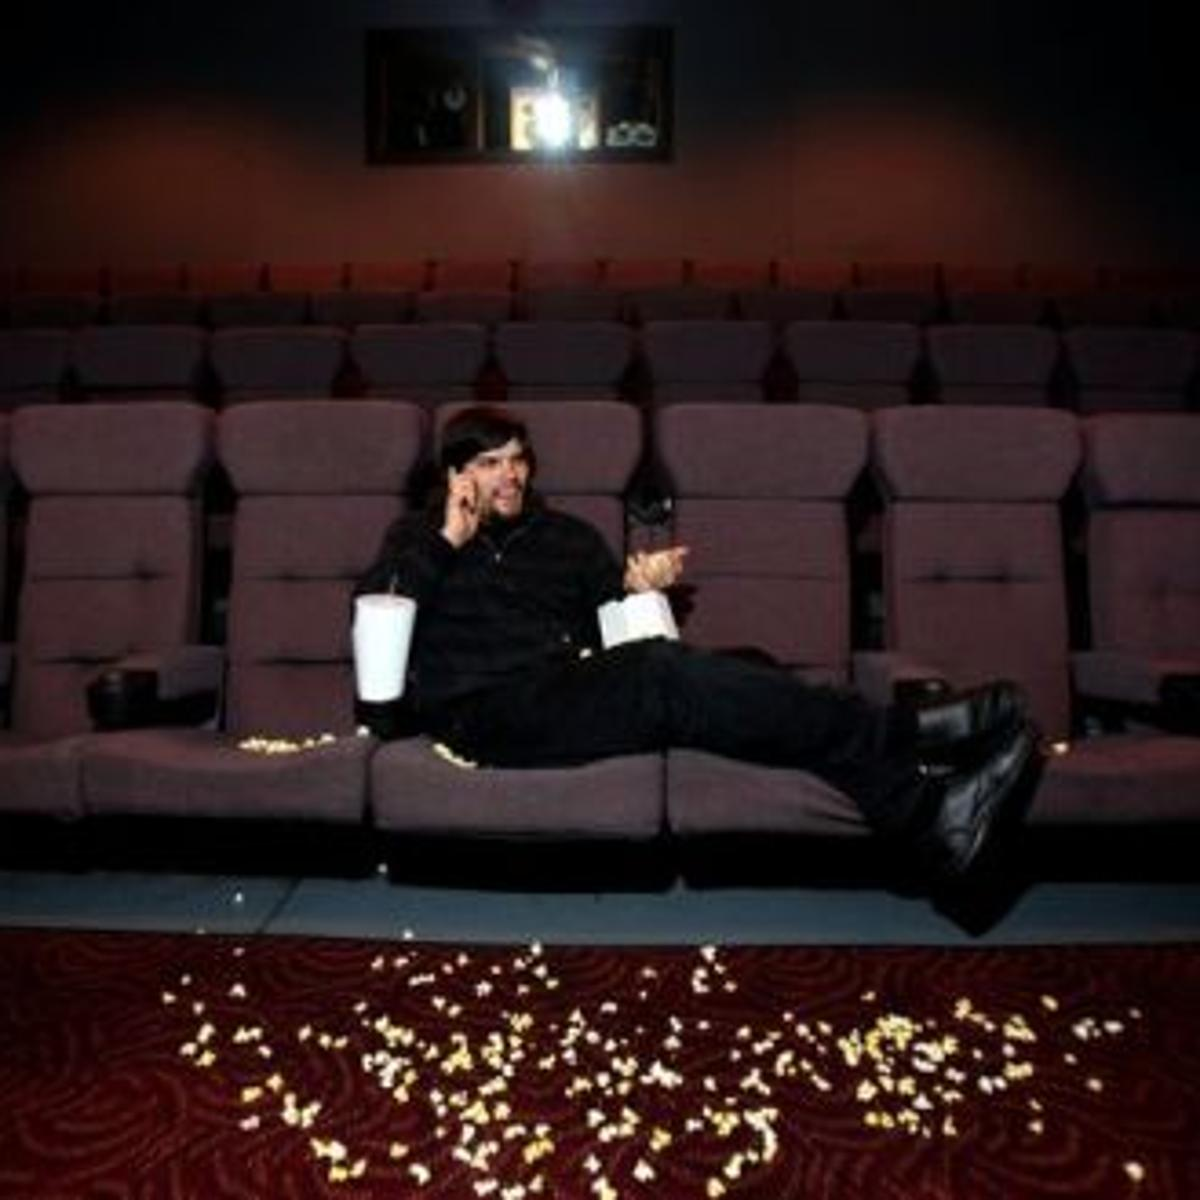 Bad Manners Foul Behavior Abound At Movie Theaters Movies Tulsaworld Com